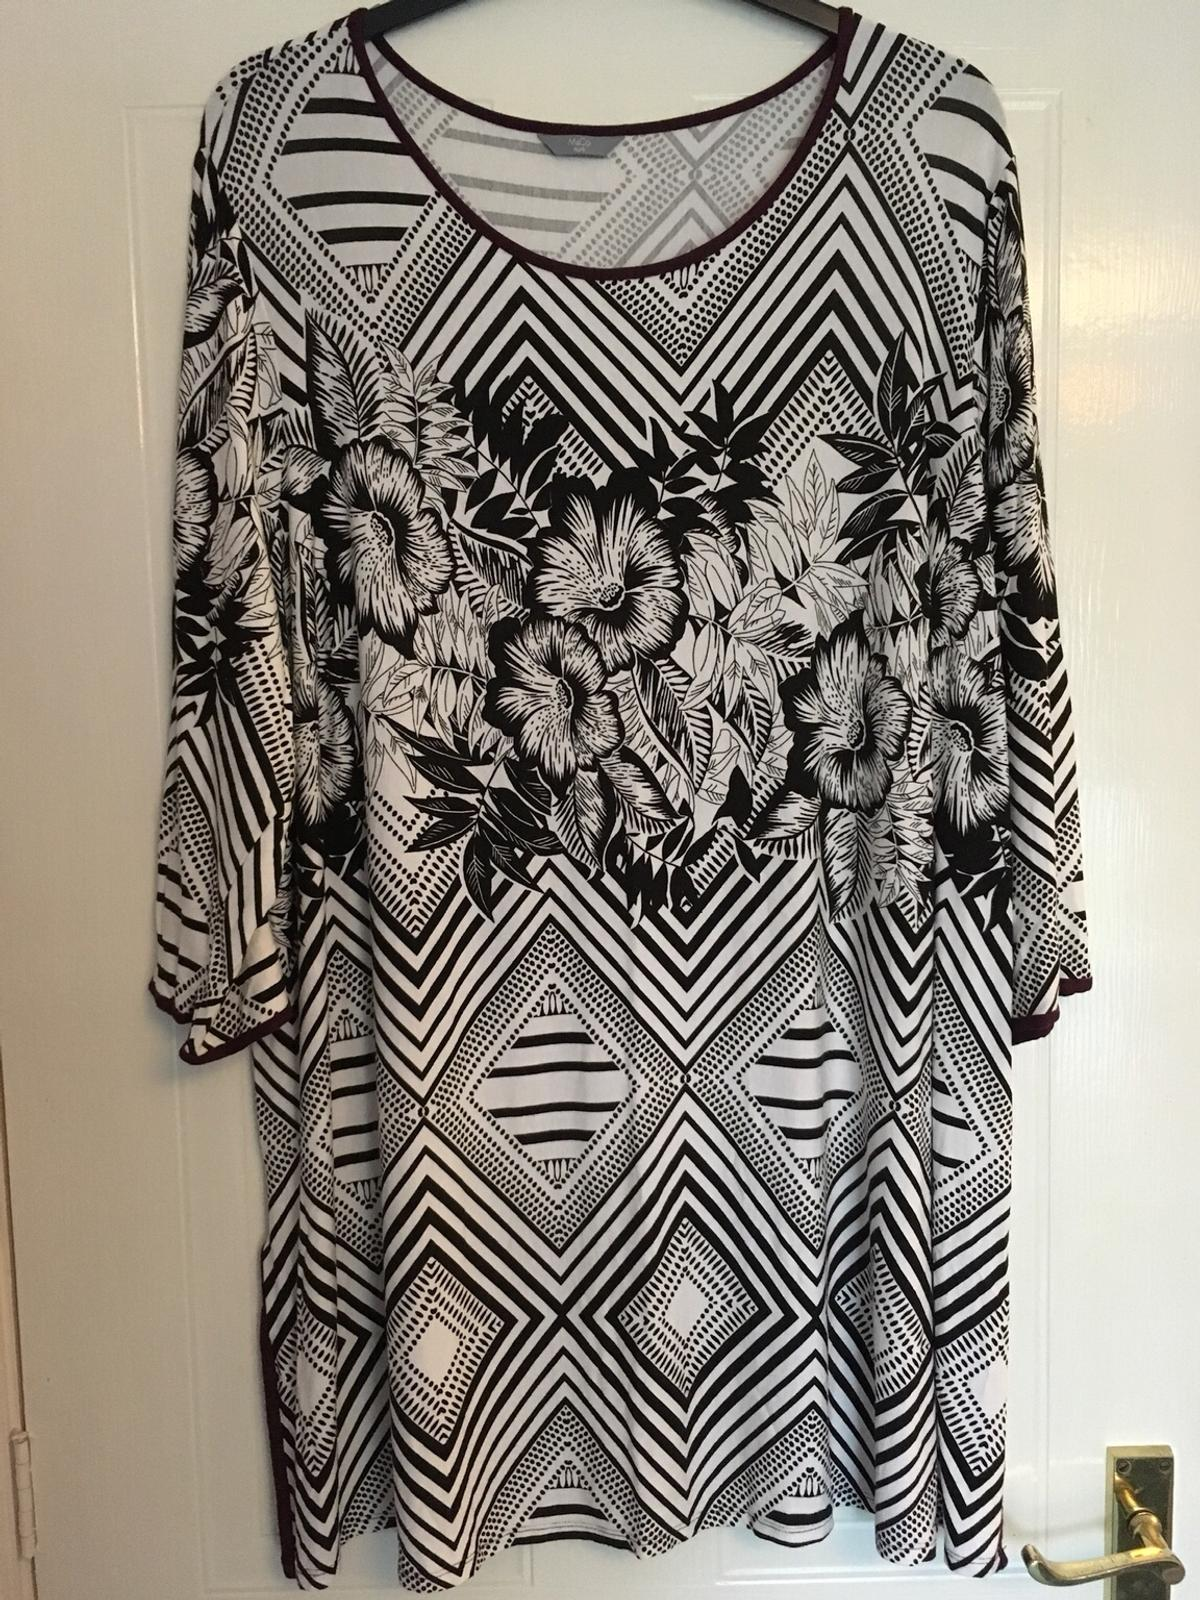 M & Co size 26 tunic top with 3/4 length sleeves in black/white print with purple trim round collar and edges. Very good condition, postage to be added